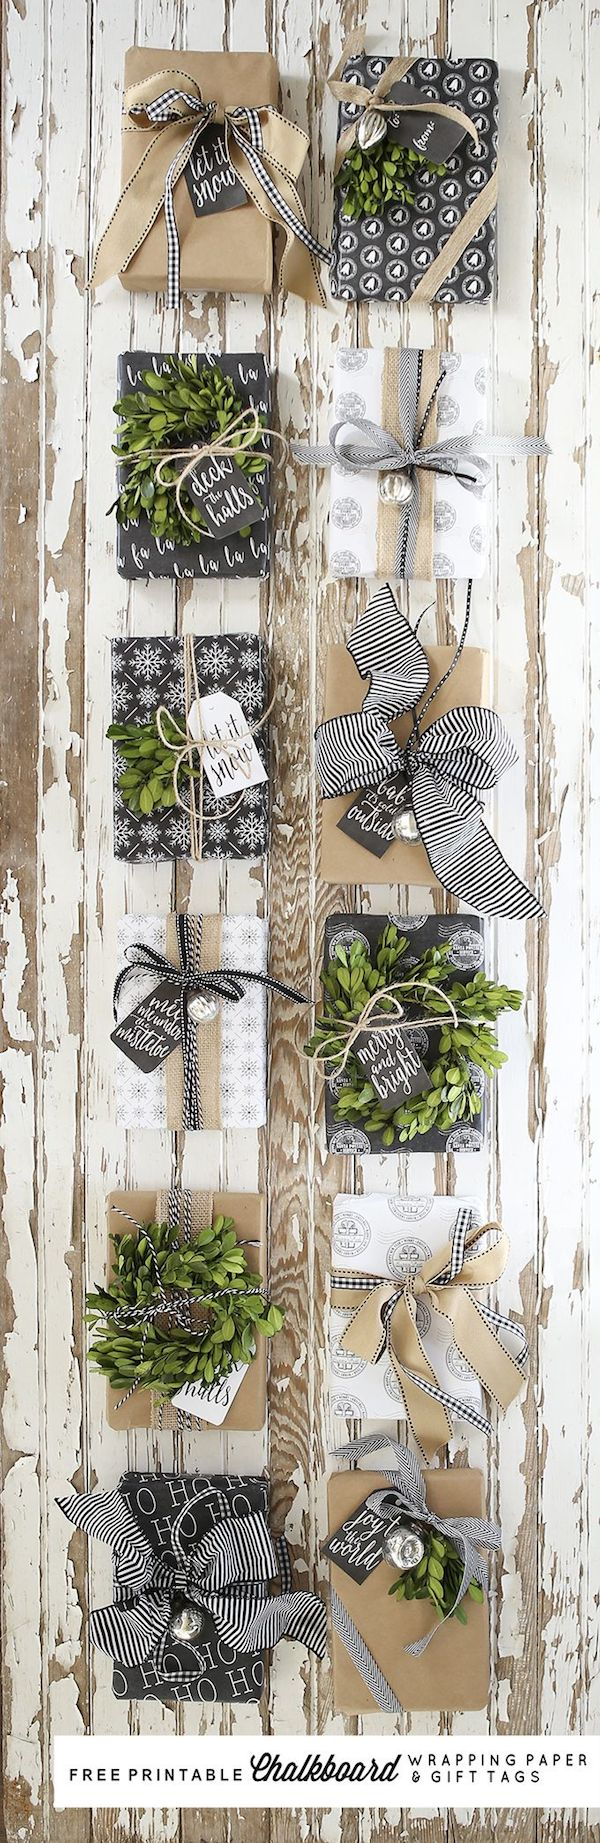 Free Printable Chalkboard Wrapping Paper and Gift Tags - Ella Claire